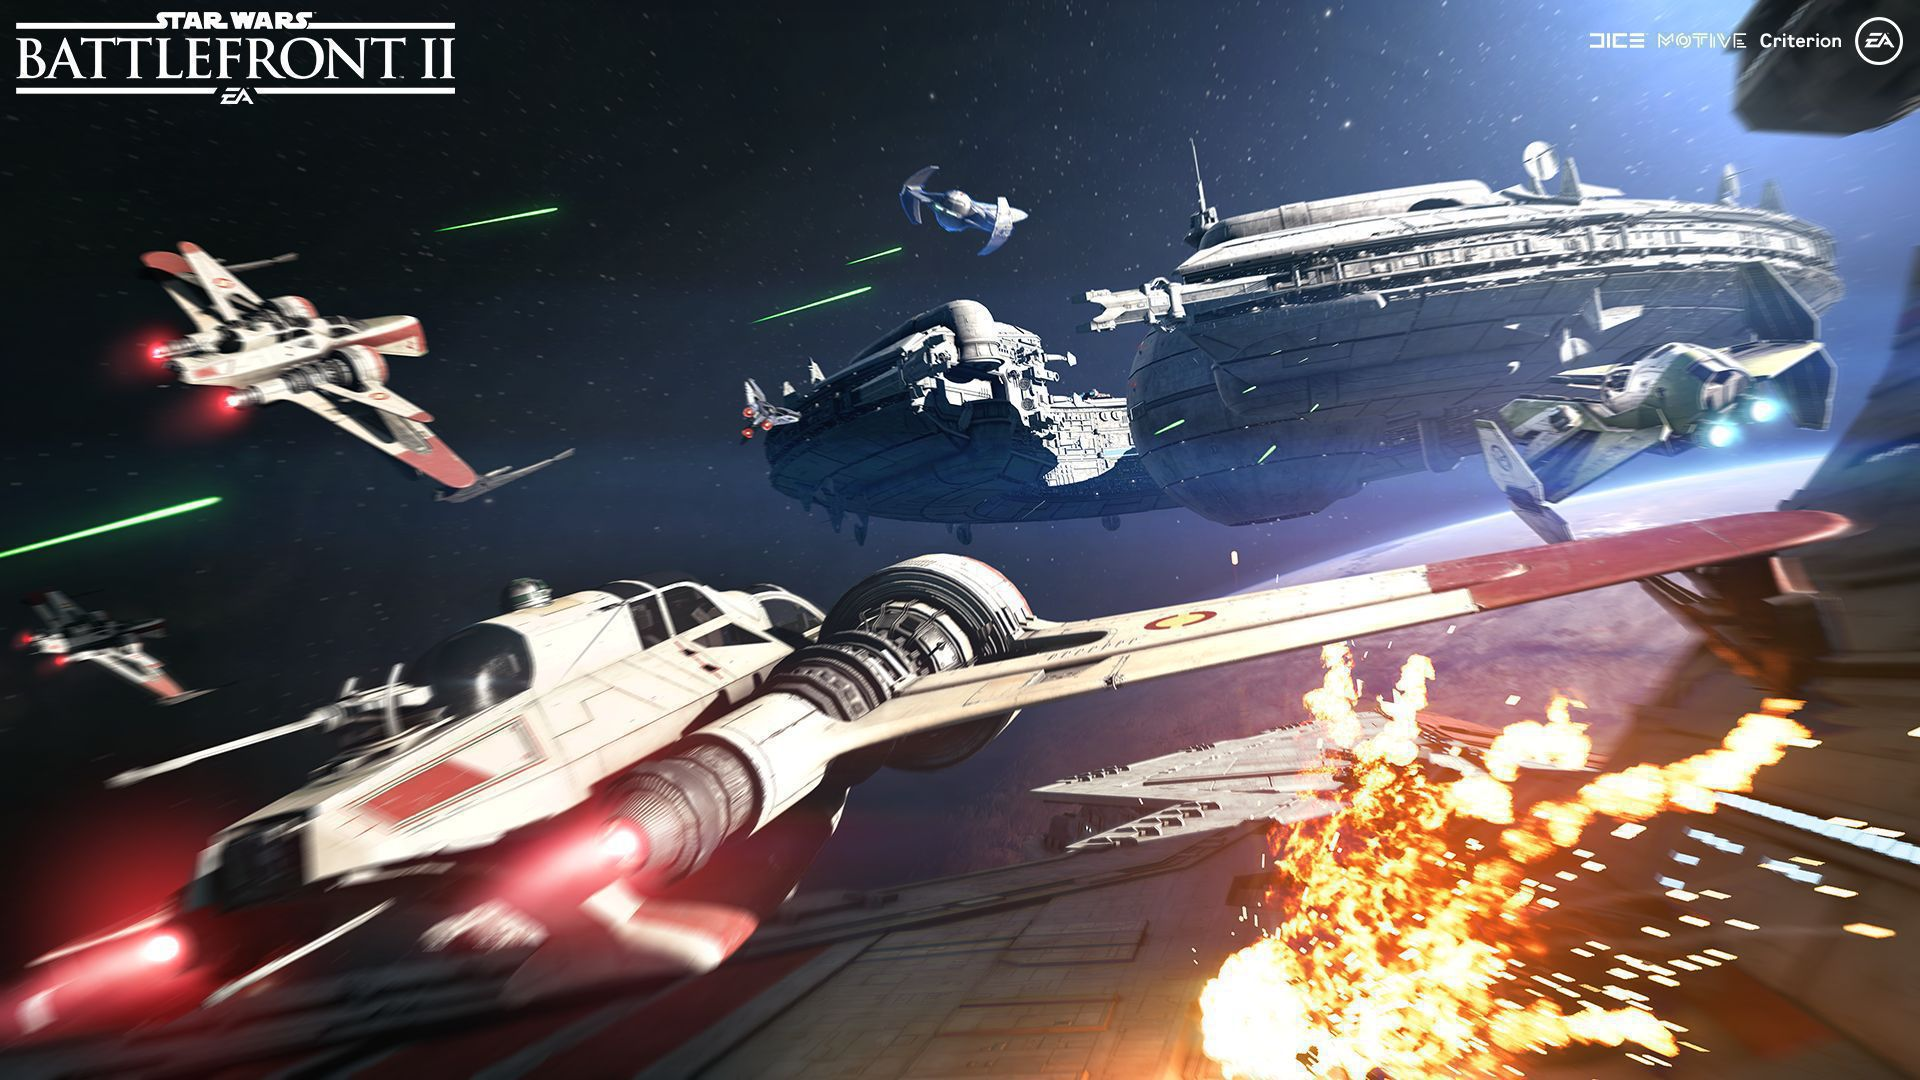 Star Wars Battlefront 2 Wallpapers